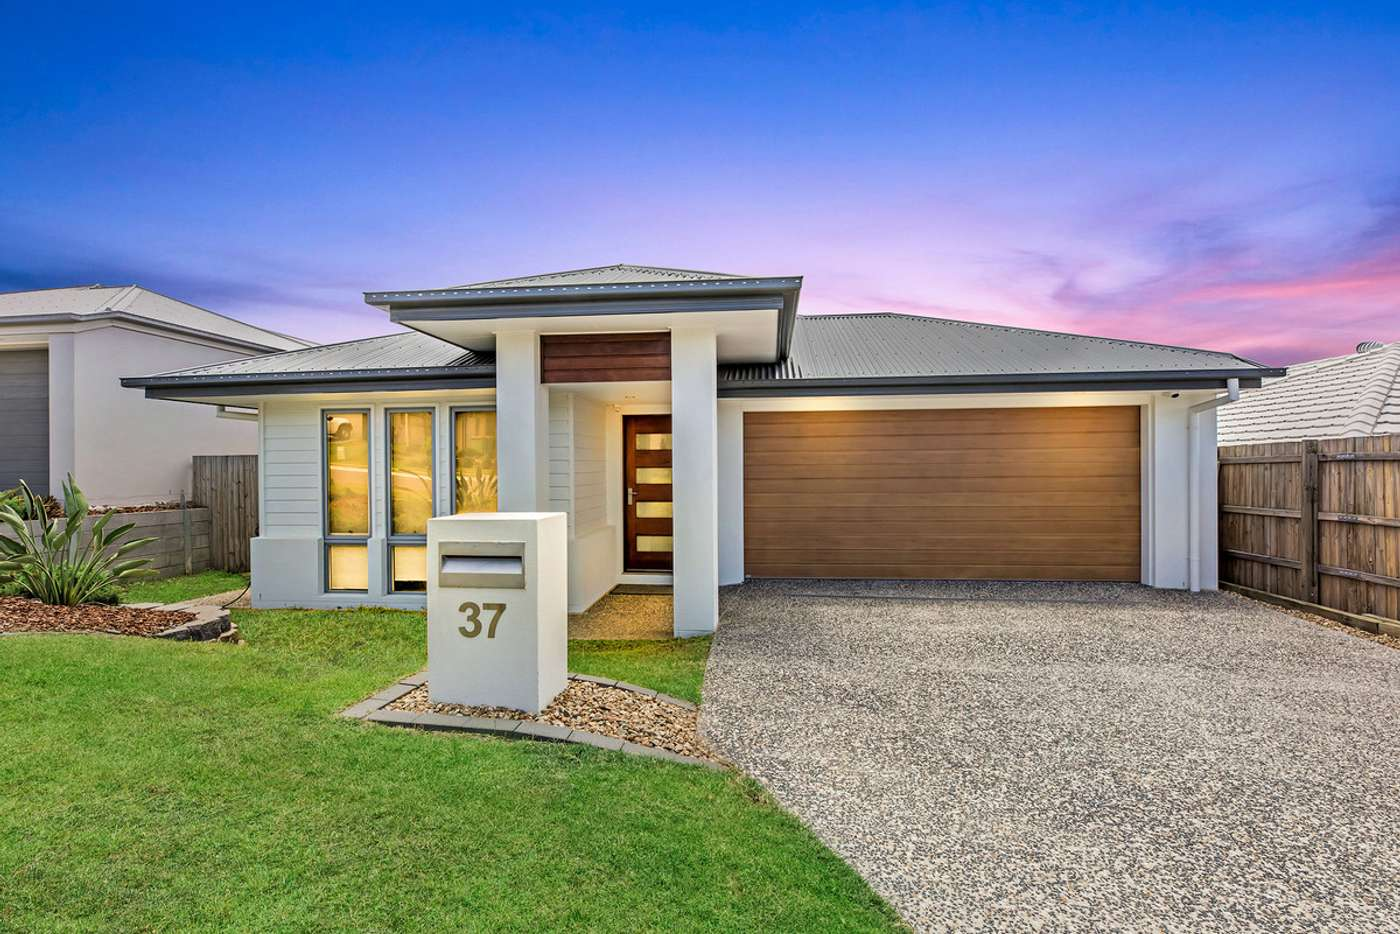 Main view of Homely house listing, 37 Mazeppa Street, South Ripley QLD 4306